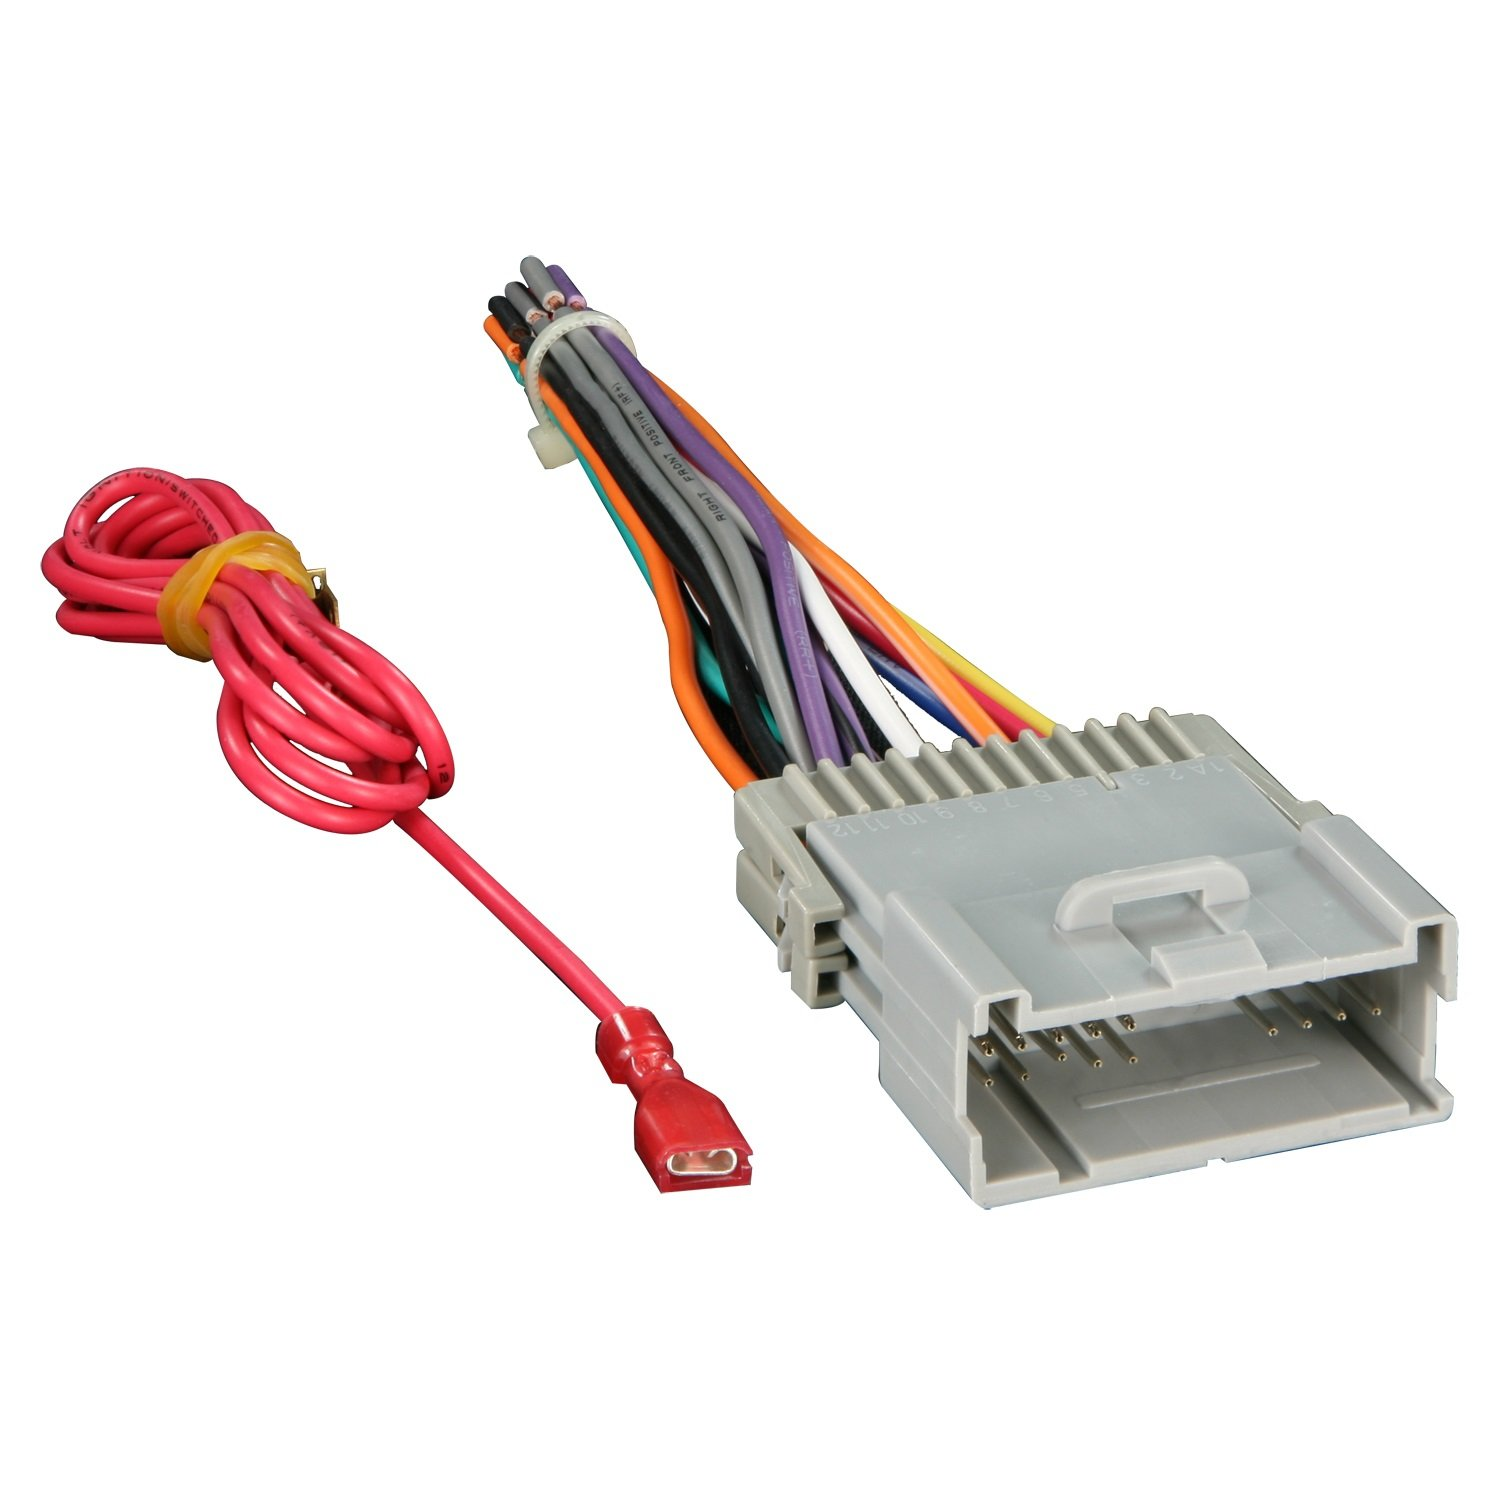 61eewxp9orL._SL1500_ amazon com metra 70 2003 radio wiring harness for gm 98 08 car stereo wiring harness kit at mifinder.co